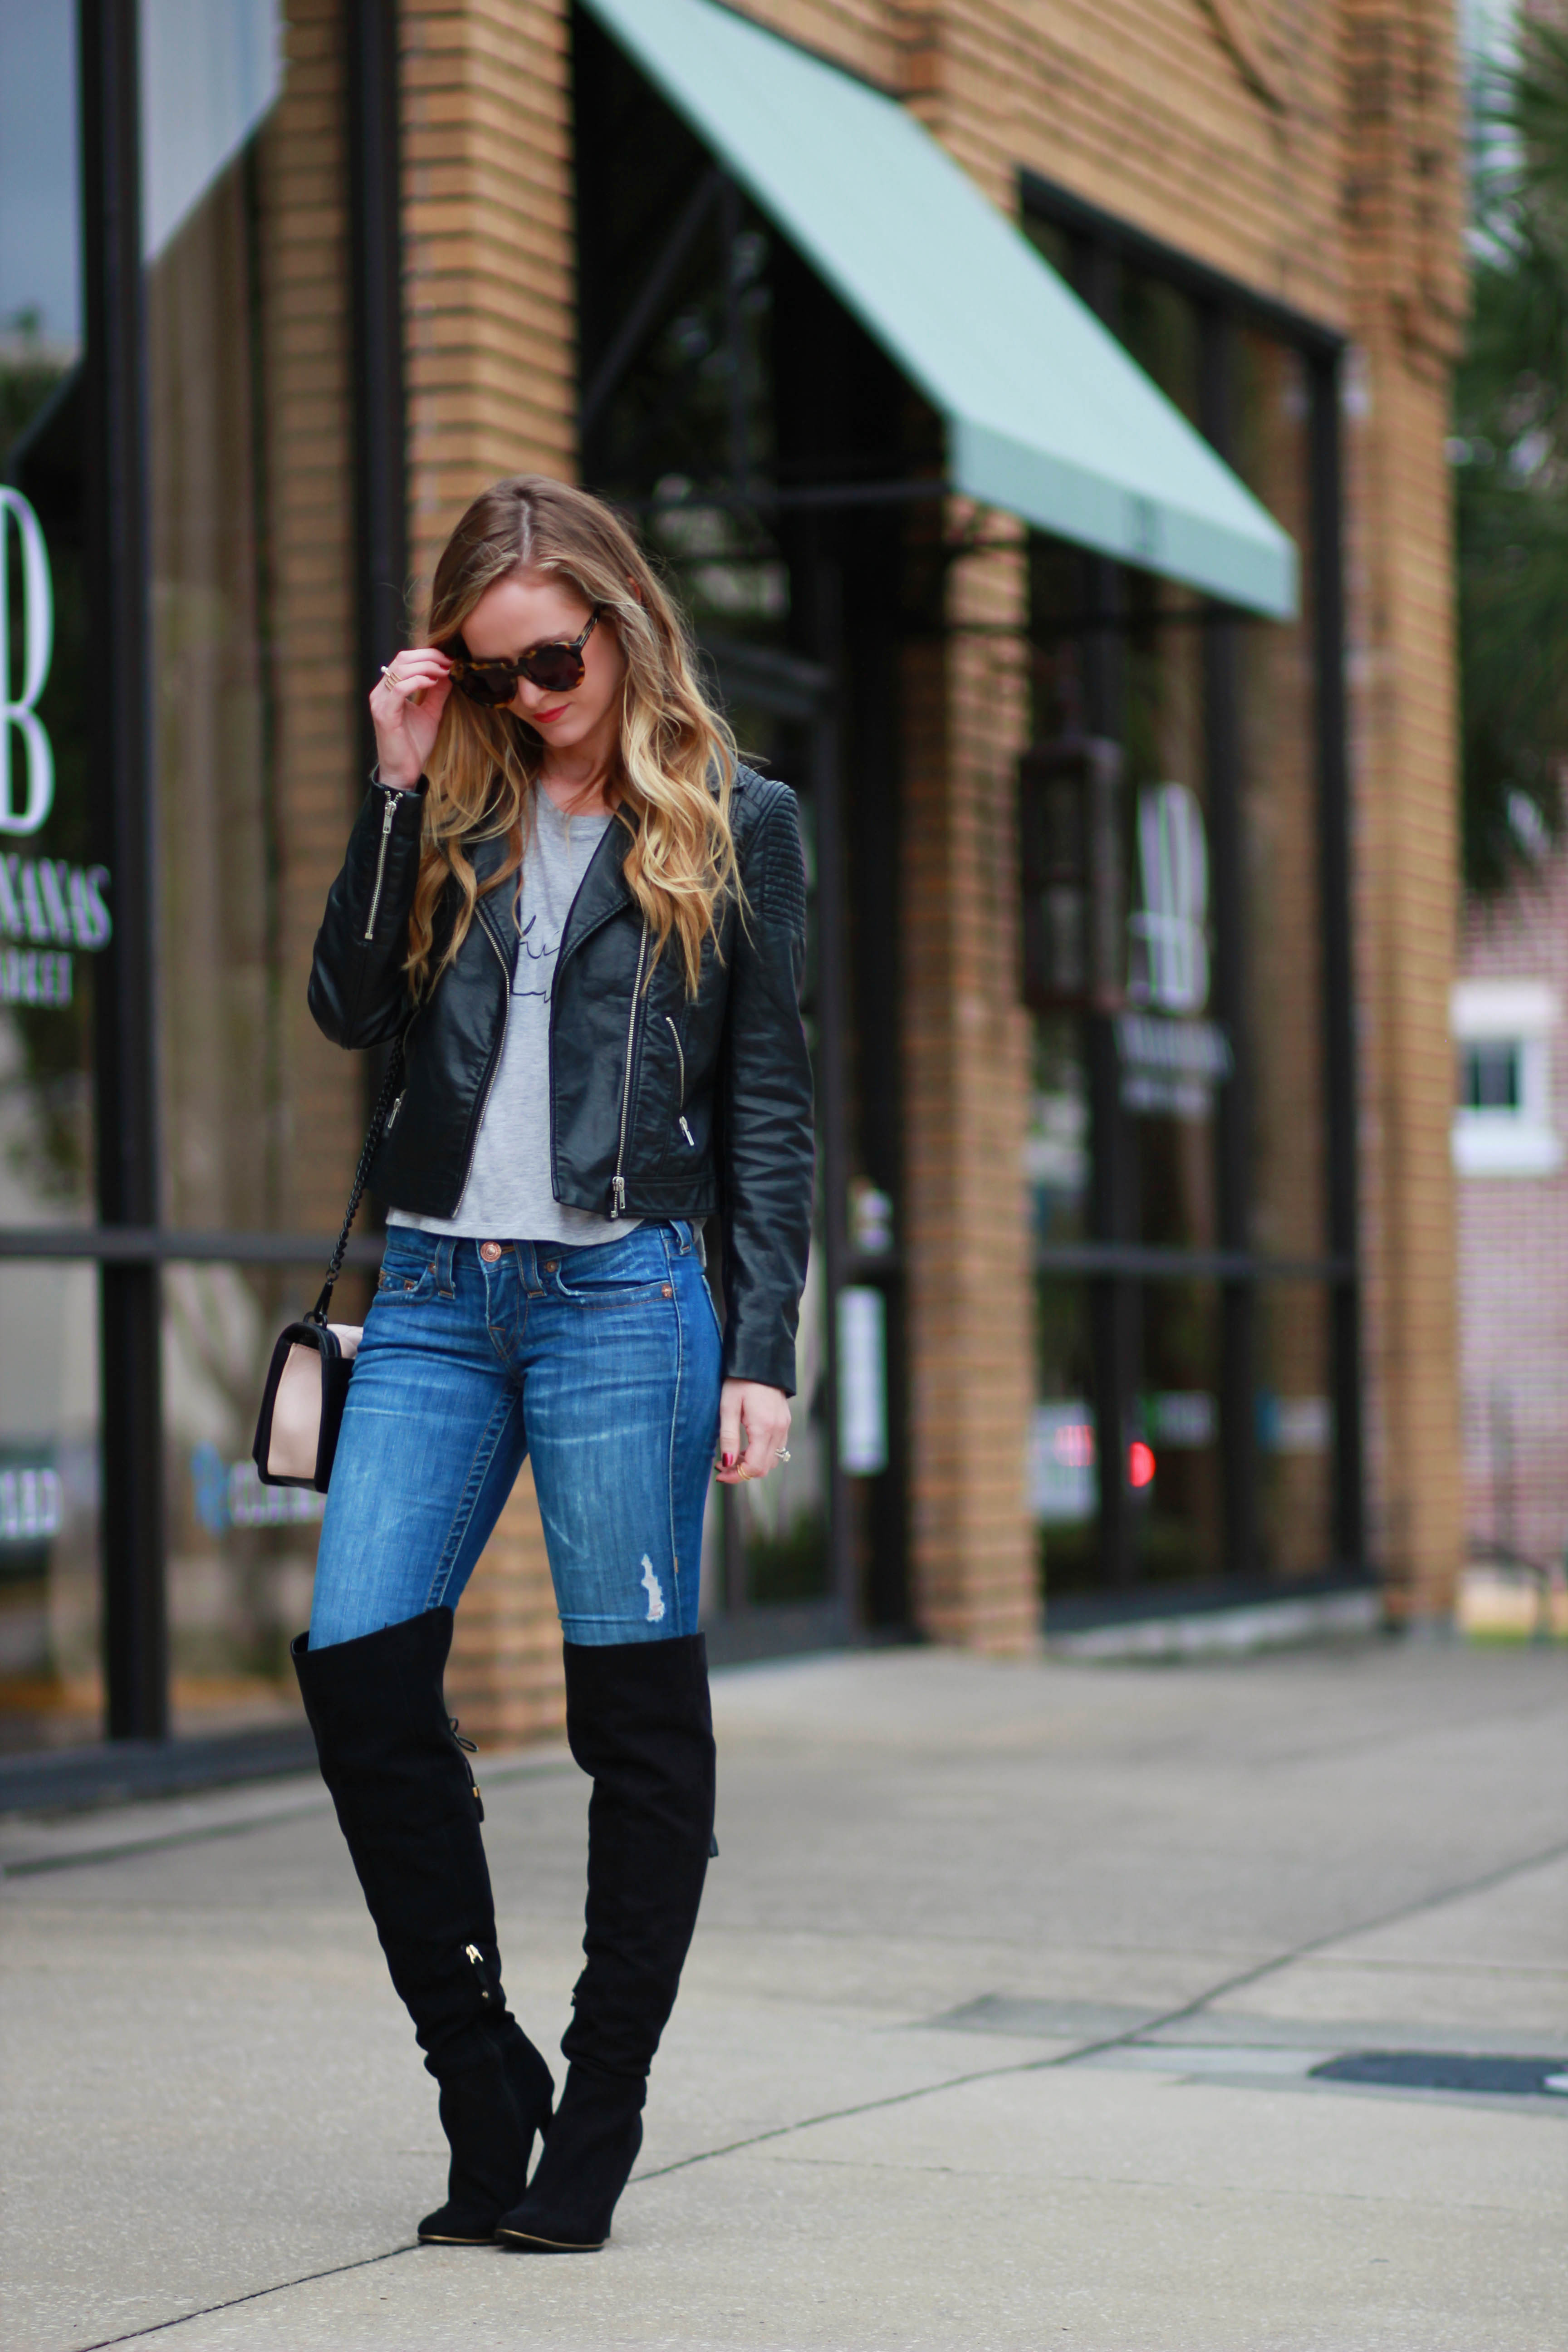 orlando, florida fashion blogger styles elle b top with h&m leather jacket, target over the knee boots, and karen walker sunglasses for a winter outfit